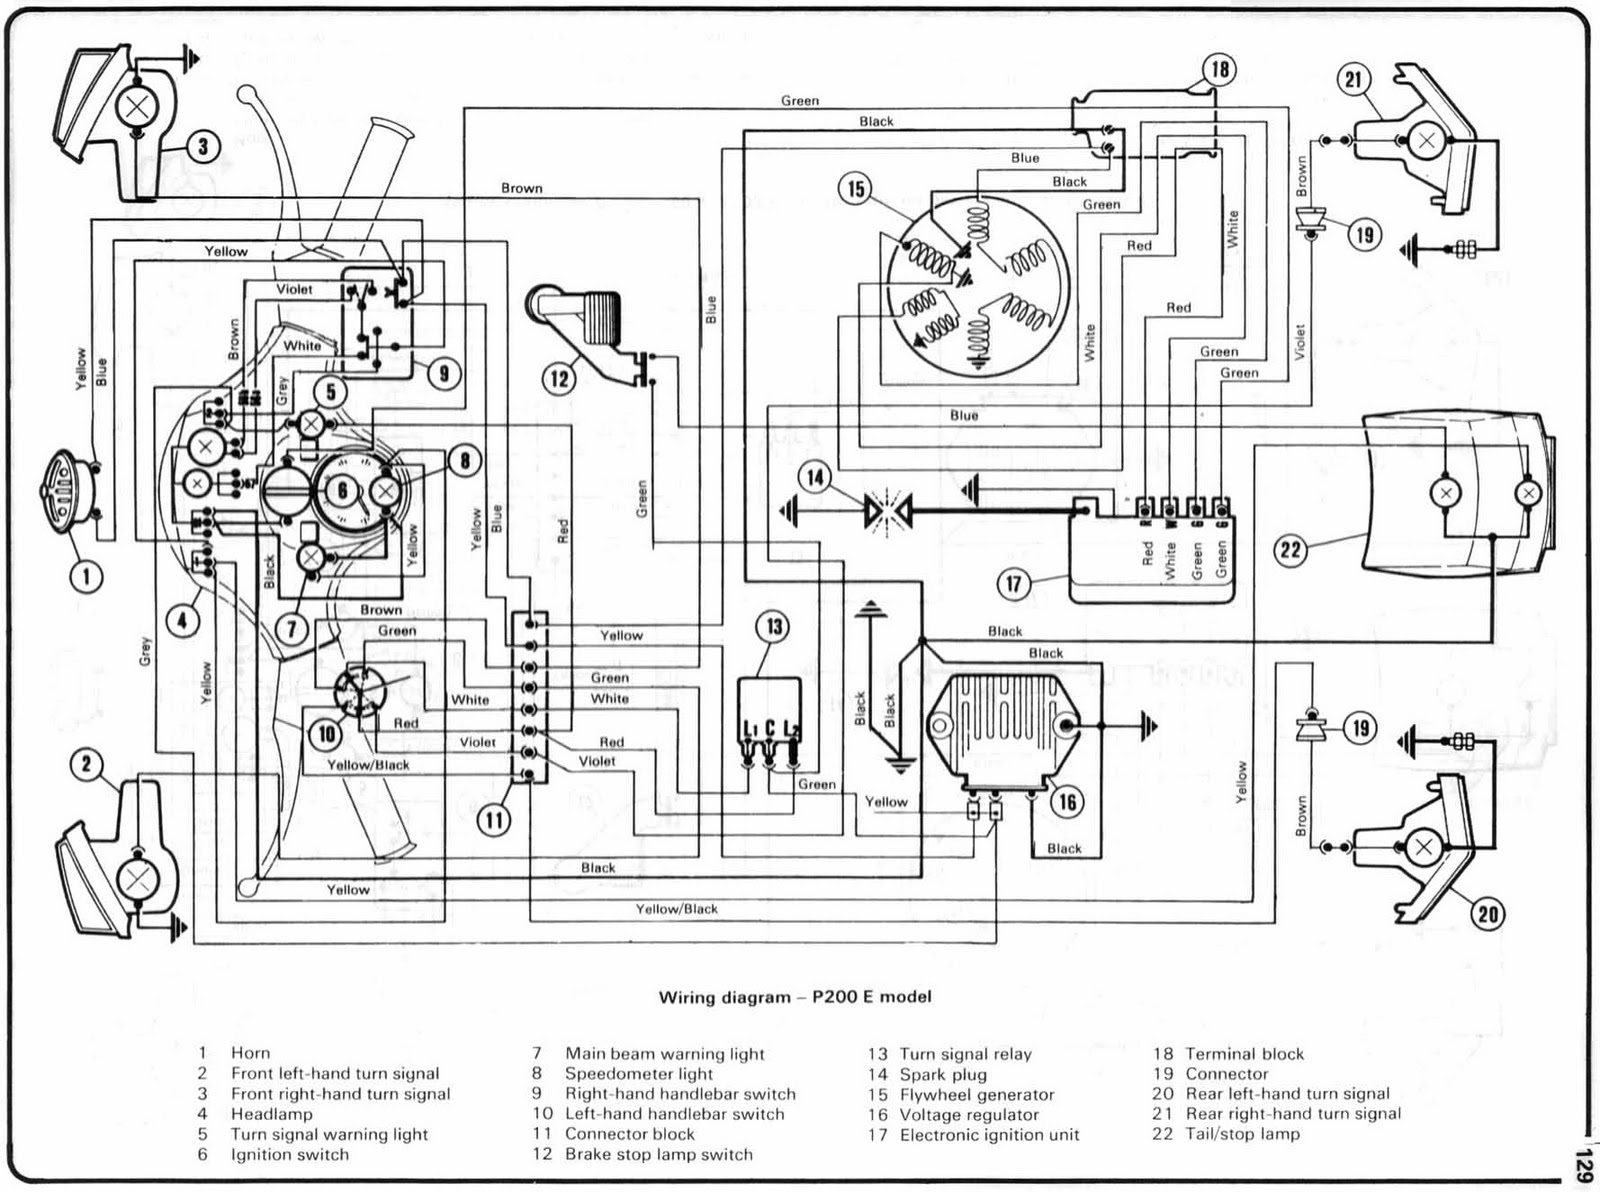 hight resolution of wiring diagrams 911 vespa p200 e model wiring diagram simple wiring schematics hvac wiring schematics